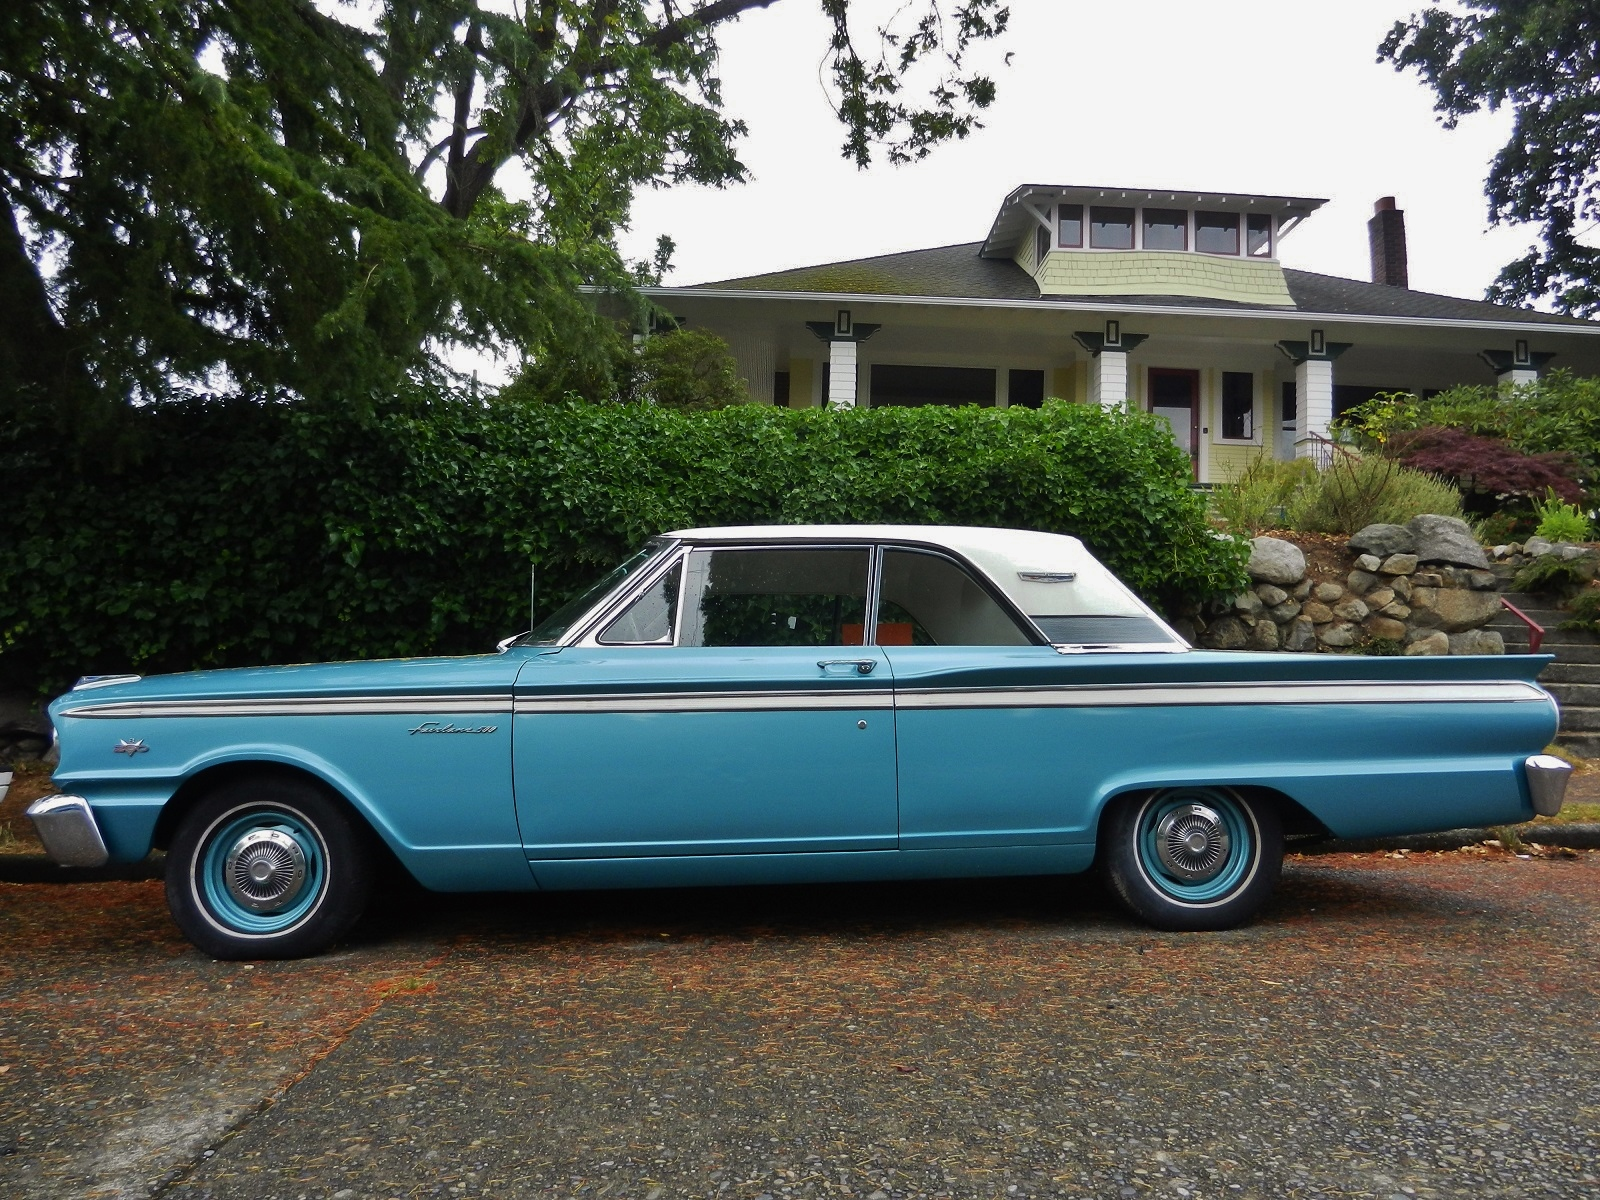 Seattle's Parked Cars: 1963 Ford Fairlane 500